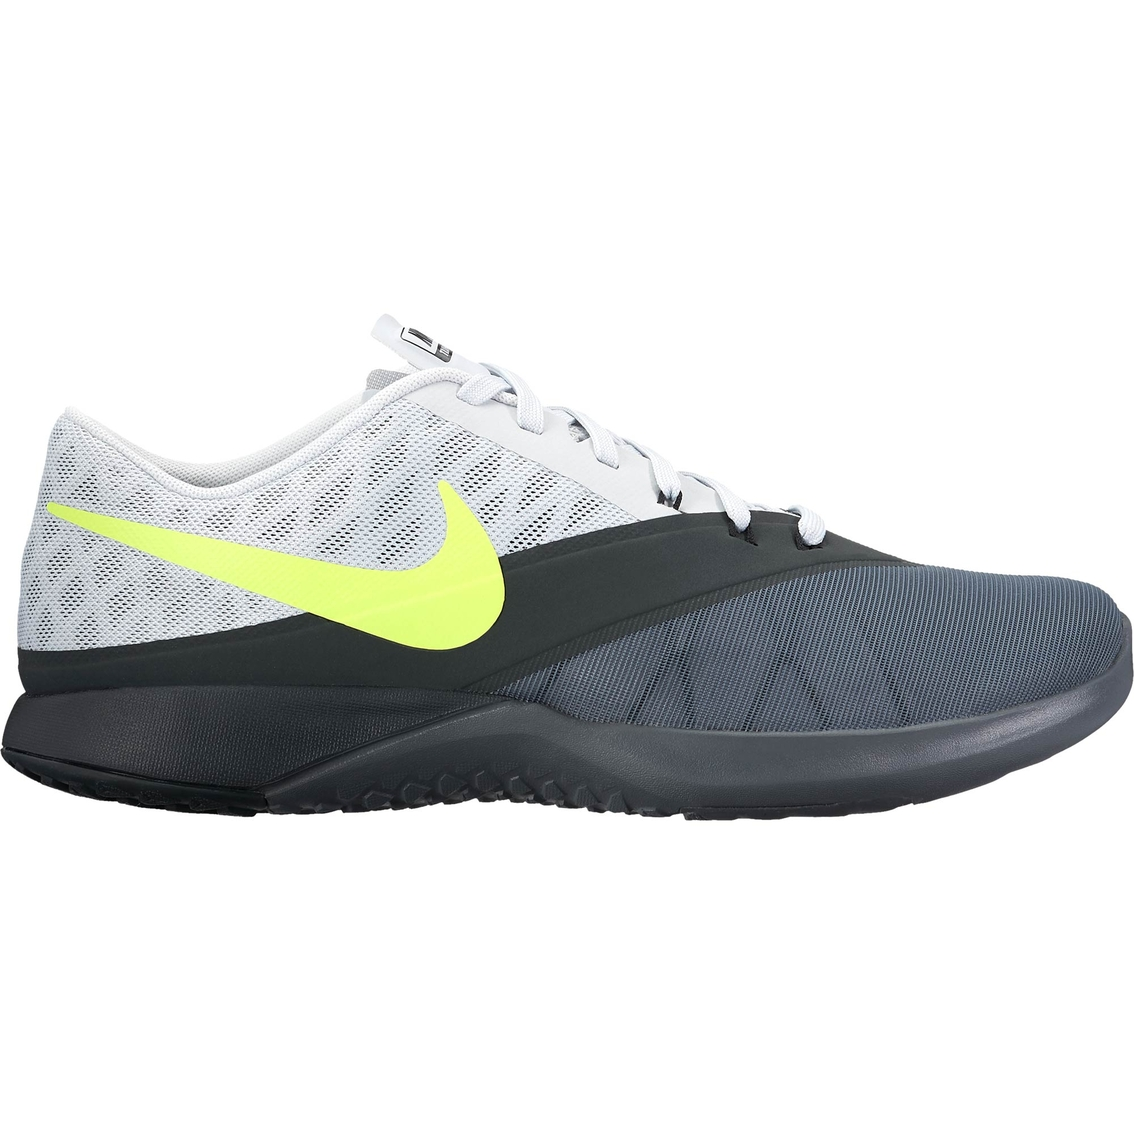 Nike Men's FS Lite 4 Training Shoes